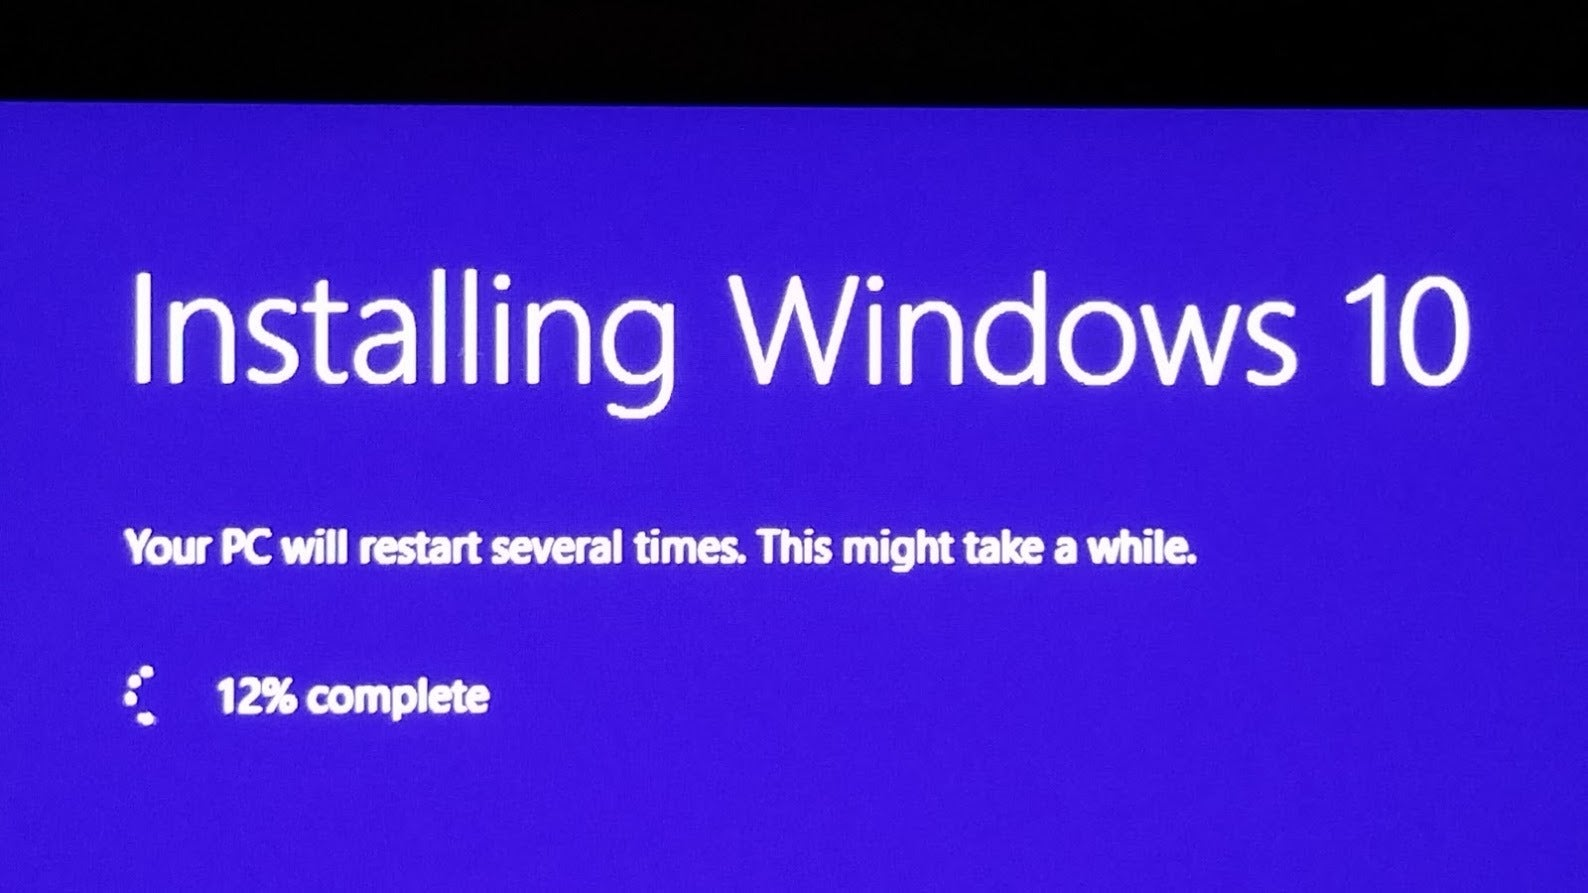 12 Irritating Windows 10 Installation Issues And How To Fix Them